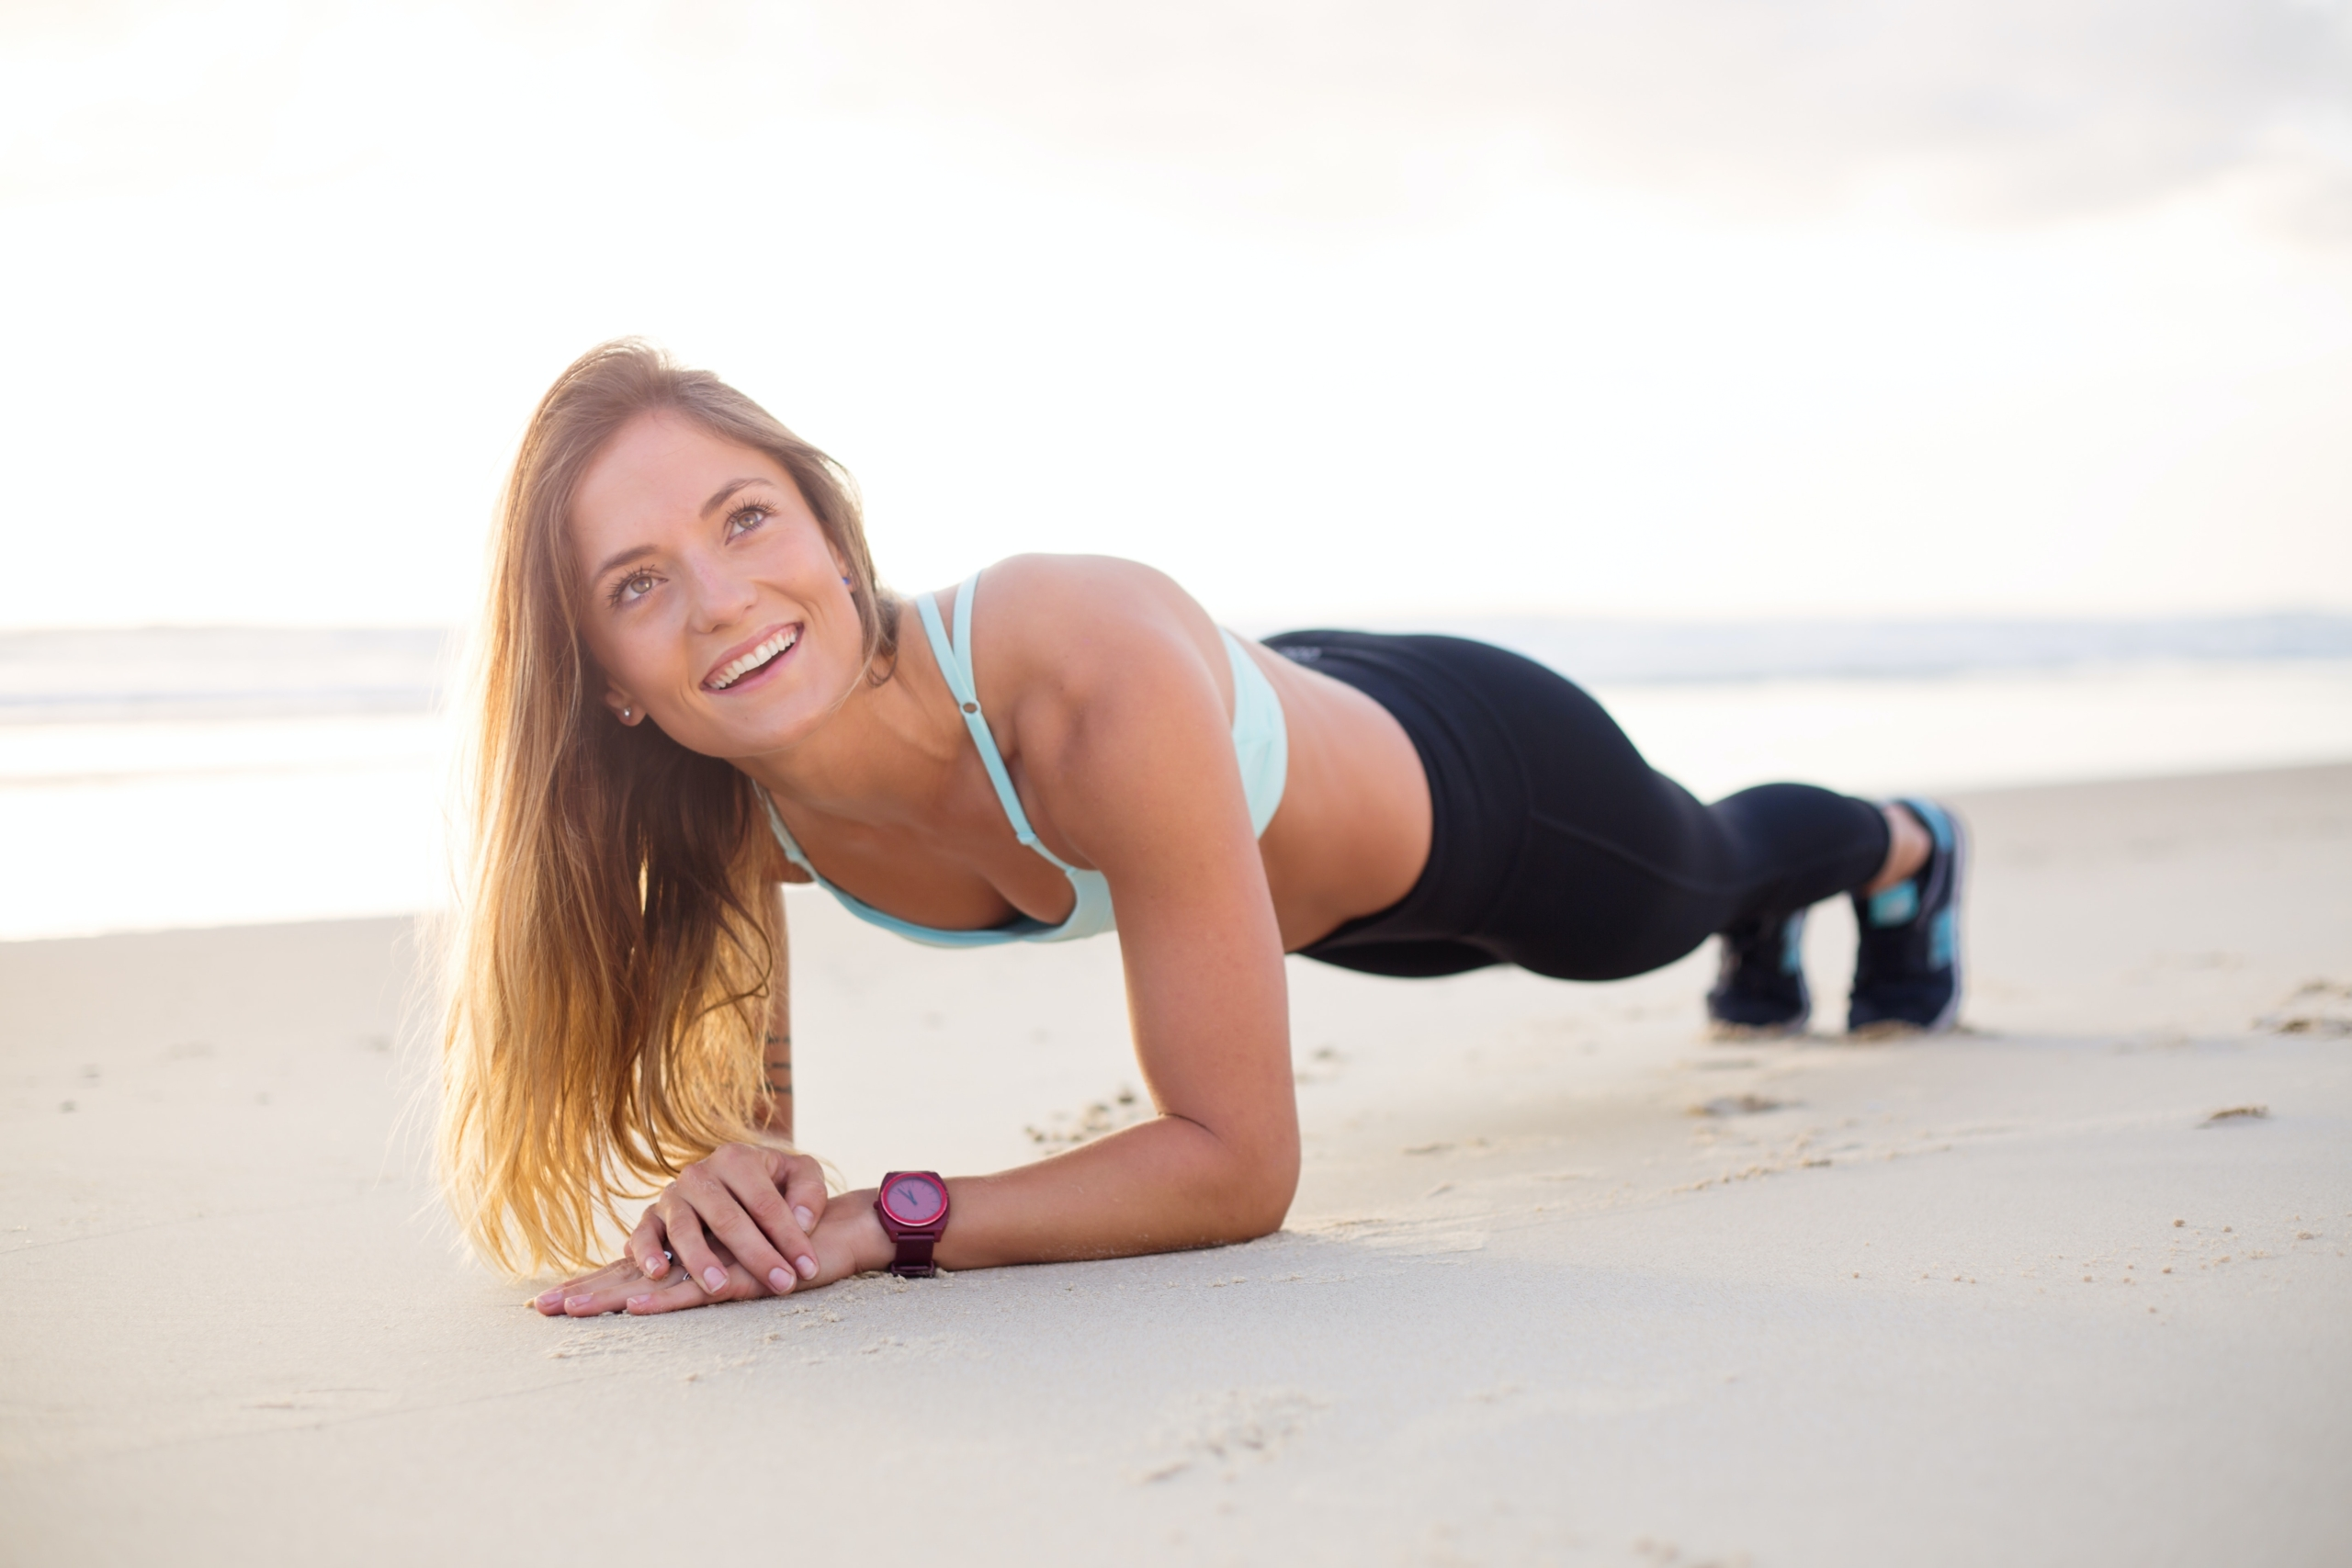 5 exercises for surrogates to prepare their body for pregnancy